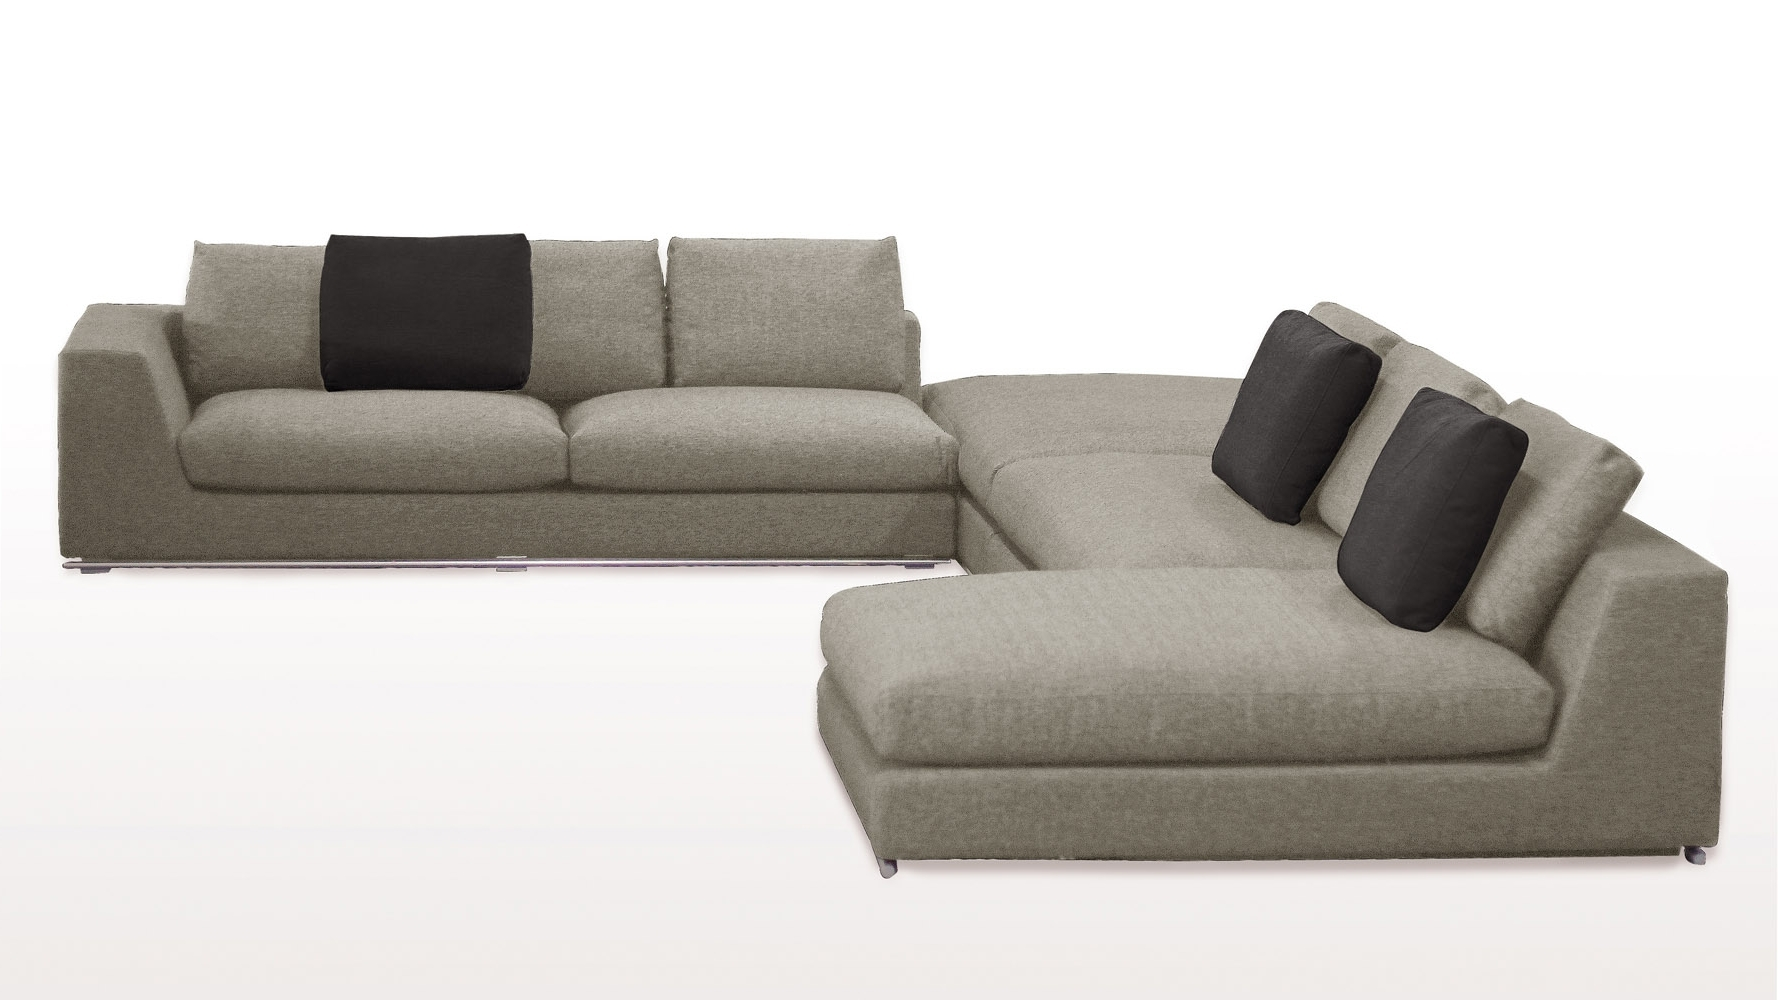 Best And Newest Fancy Armless Sectional Sofa 53 On Sofa Room Ideas With Armless Within Armless Sectional Sofas (View 1 of 15)